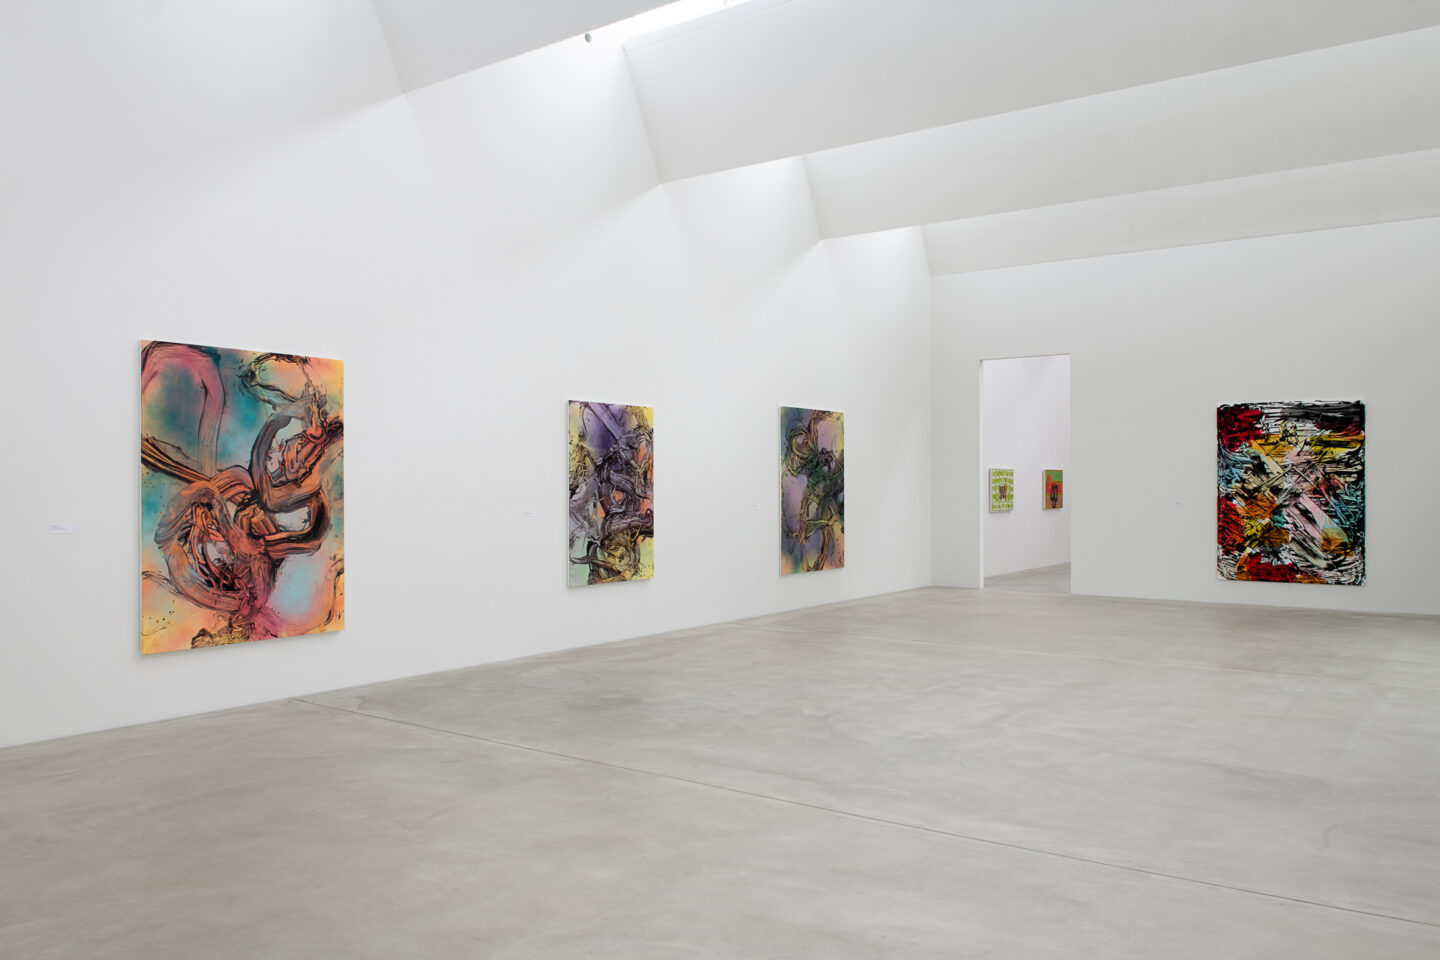 Exhibition View Groupshow «Frozen Gesture ; view on Judy Millar, Untitled, 2018, Untitled 2018, Without Yesterday, 2018 and Be Do Be Do IV, 2013 (Courtesy: the artist and Galerie Mark Müller, Zurich)» at Kunstmuseum Winterthur, 2019 / Photo: Sebastian Stadler